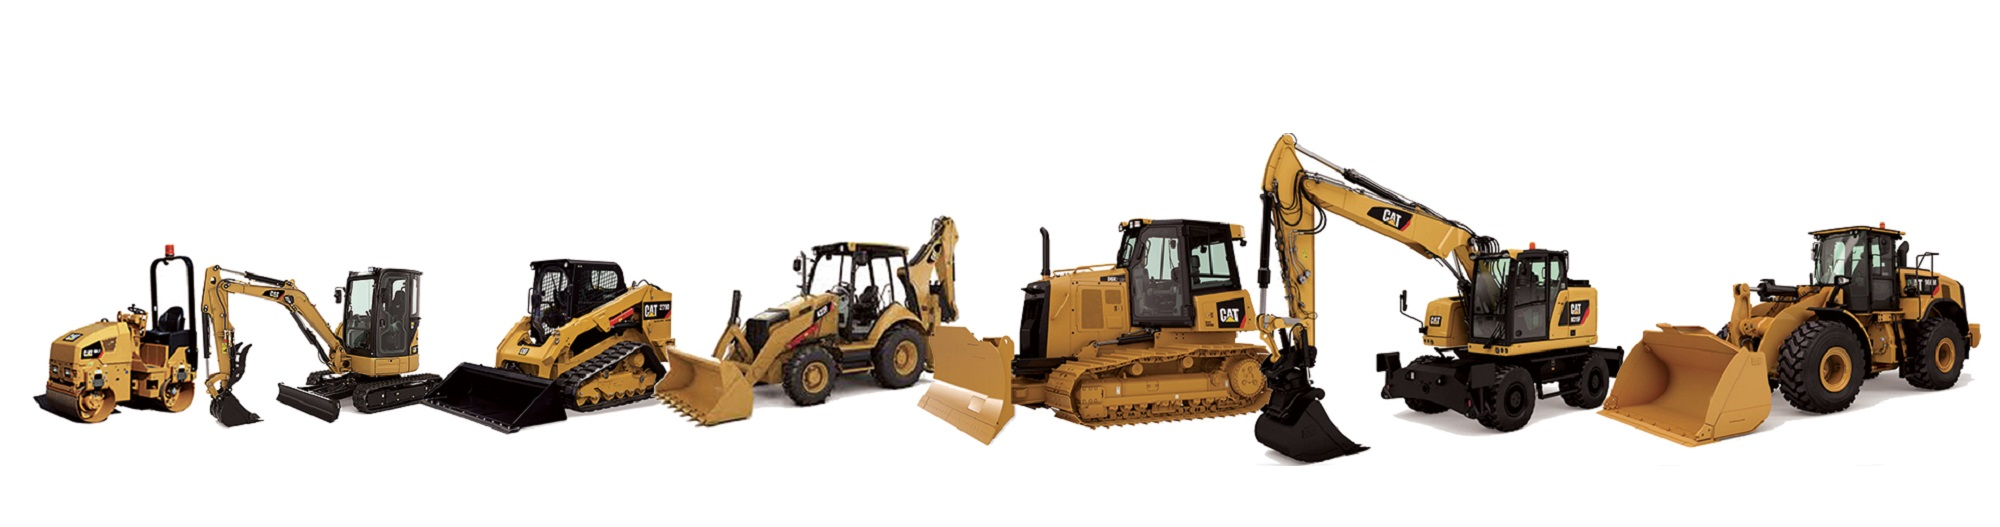 Used Cat Construction Equipment for Sale - New York & CT